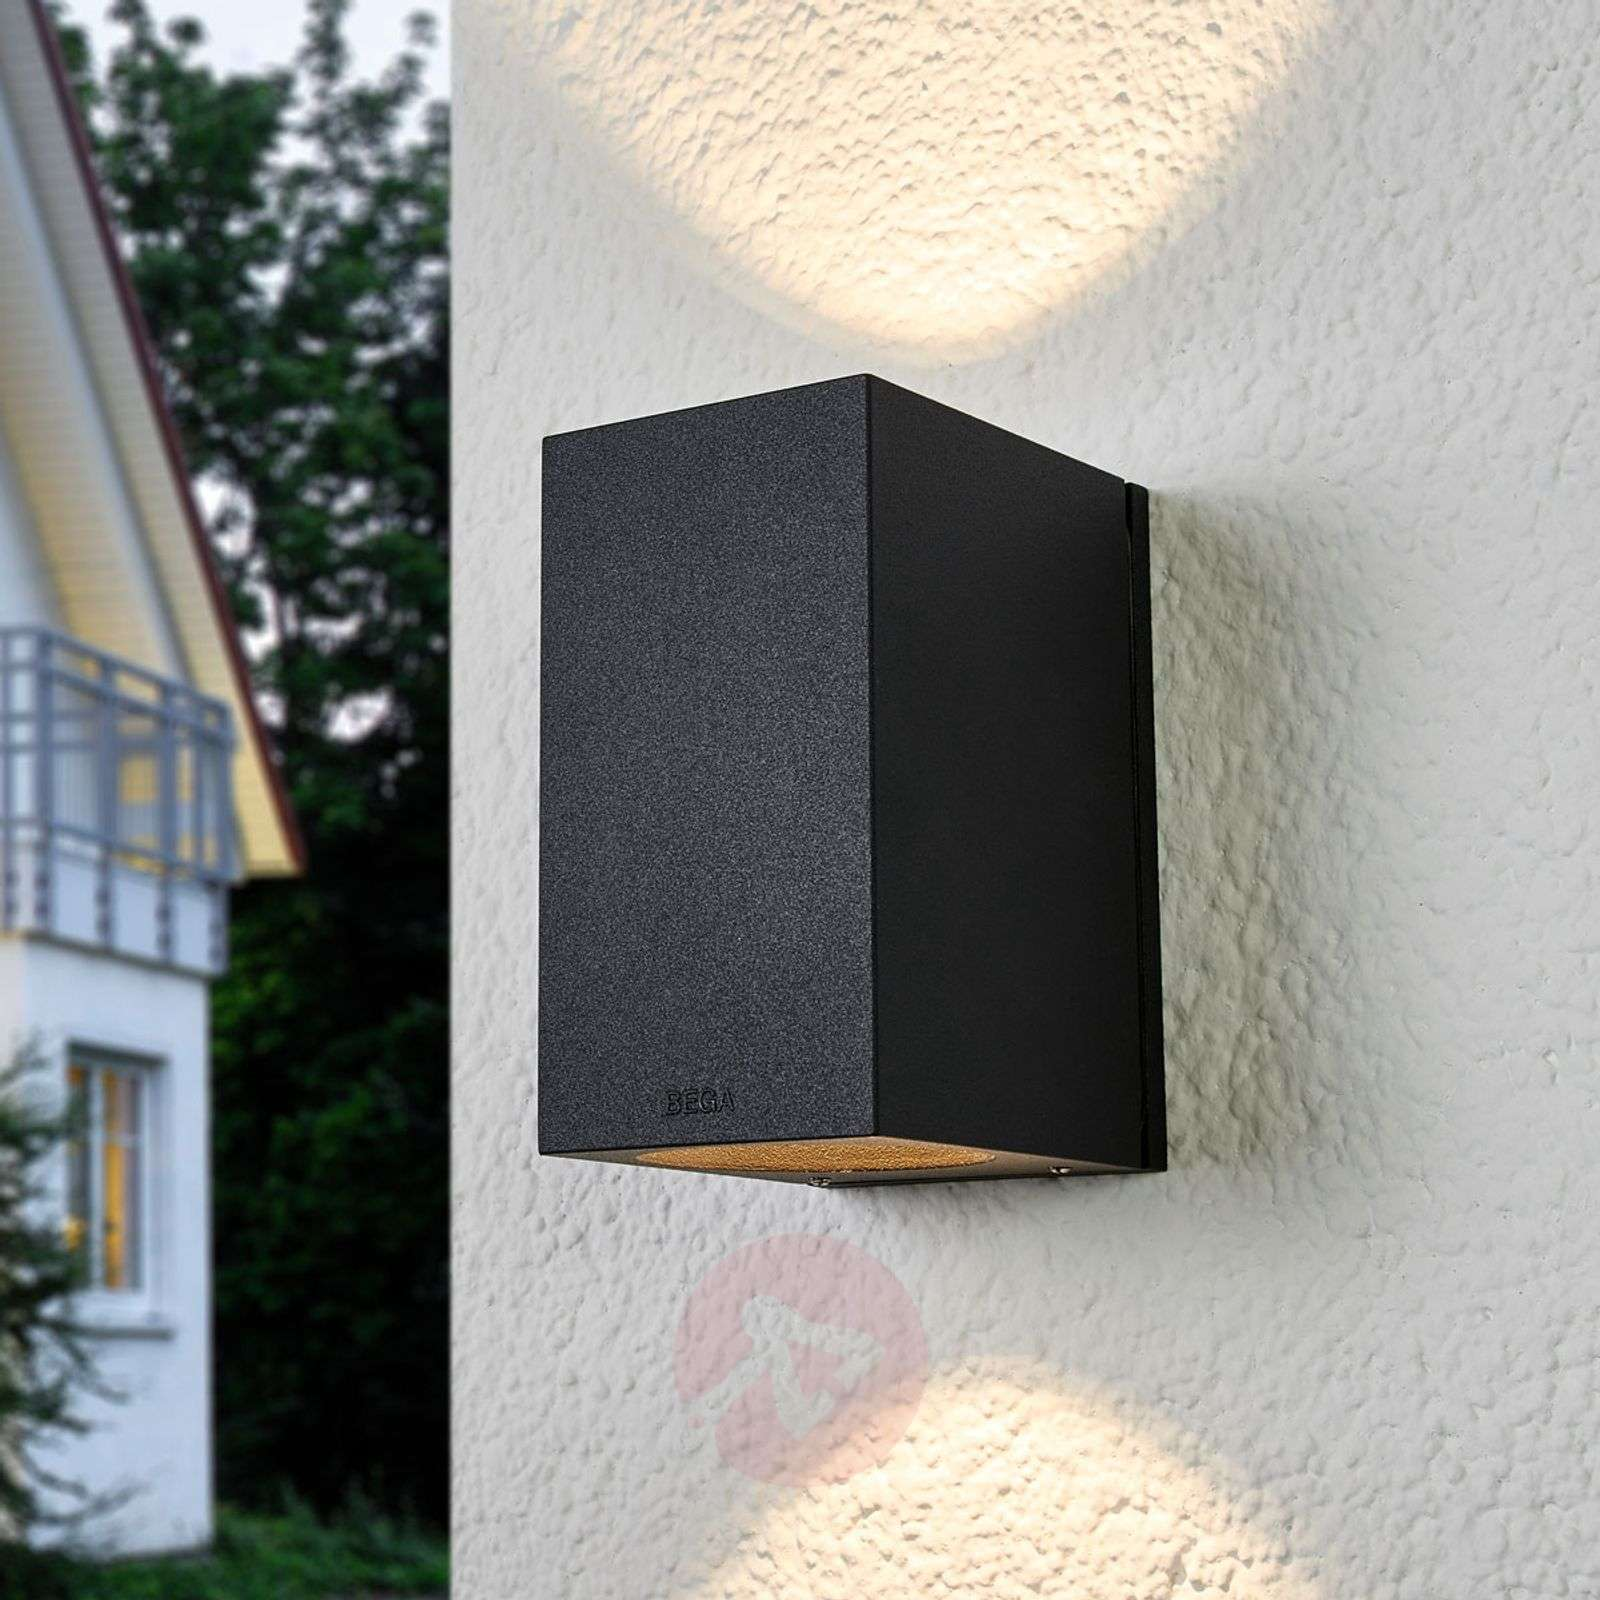 Bega Fred LED outdoor wall lamp two light outlets-1566023-01